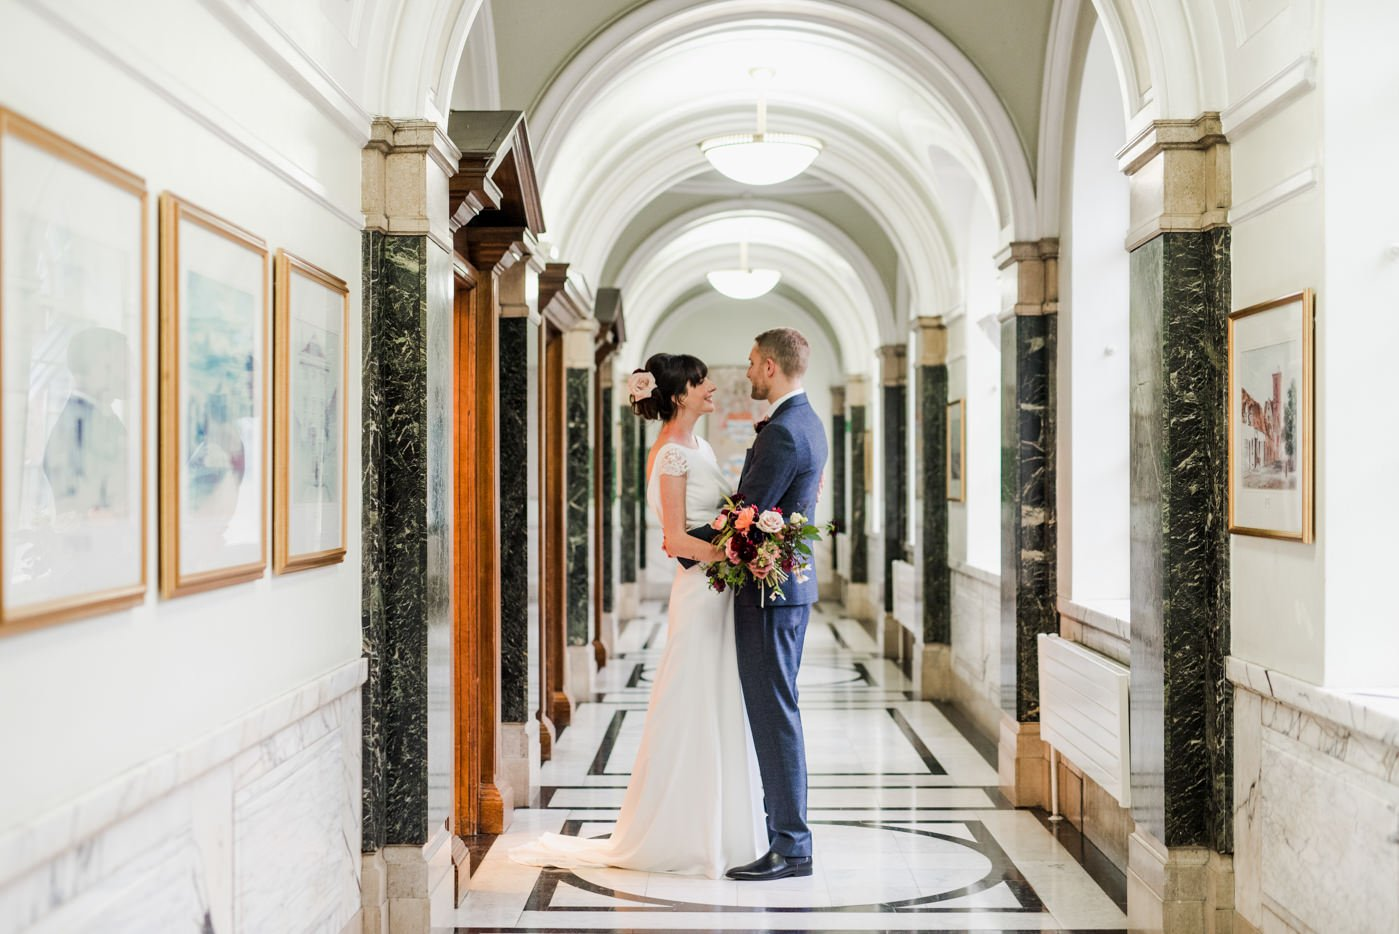 A couple stand in the marble corridor at their wedding ceremony at Islington Town Hall in London